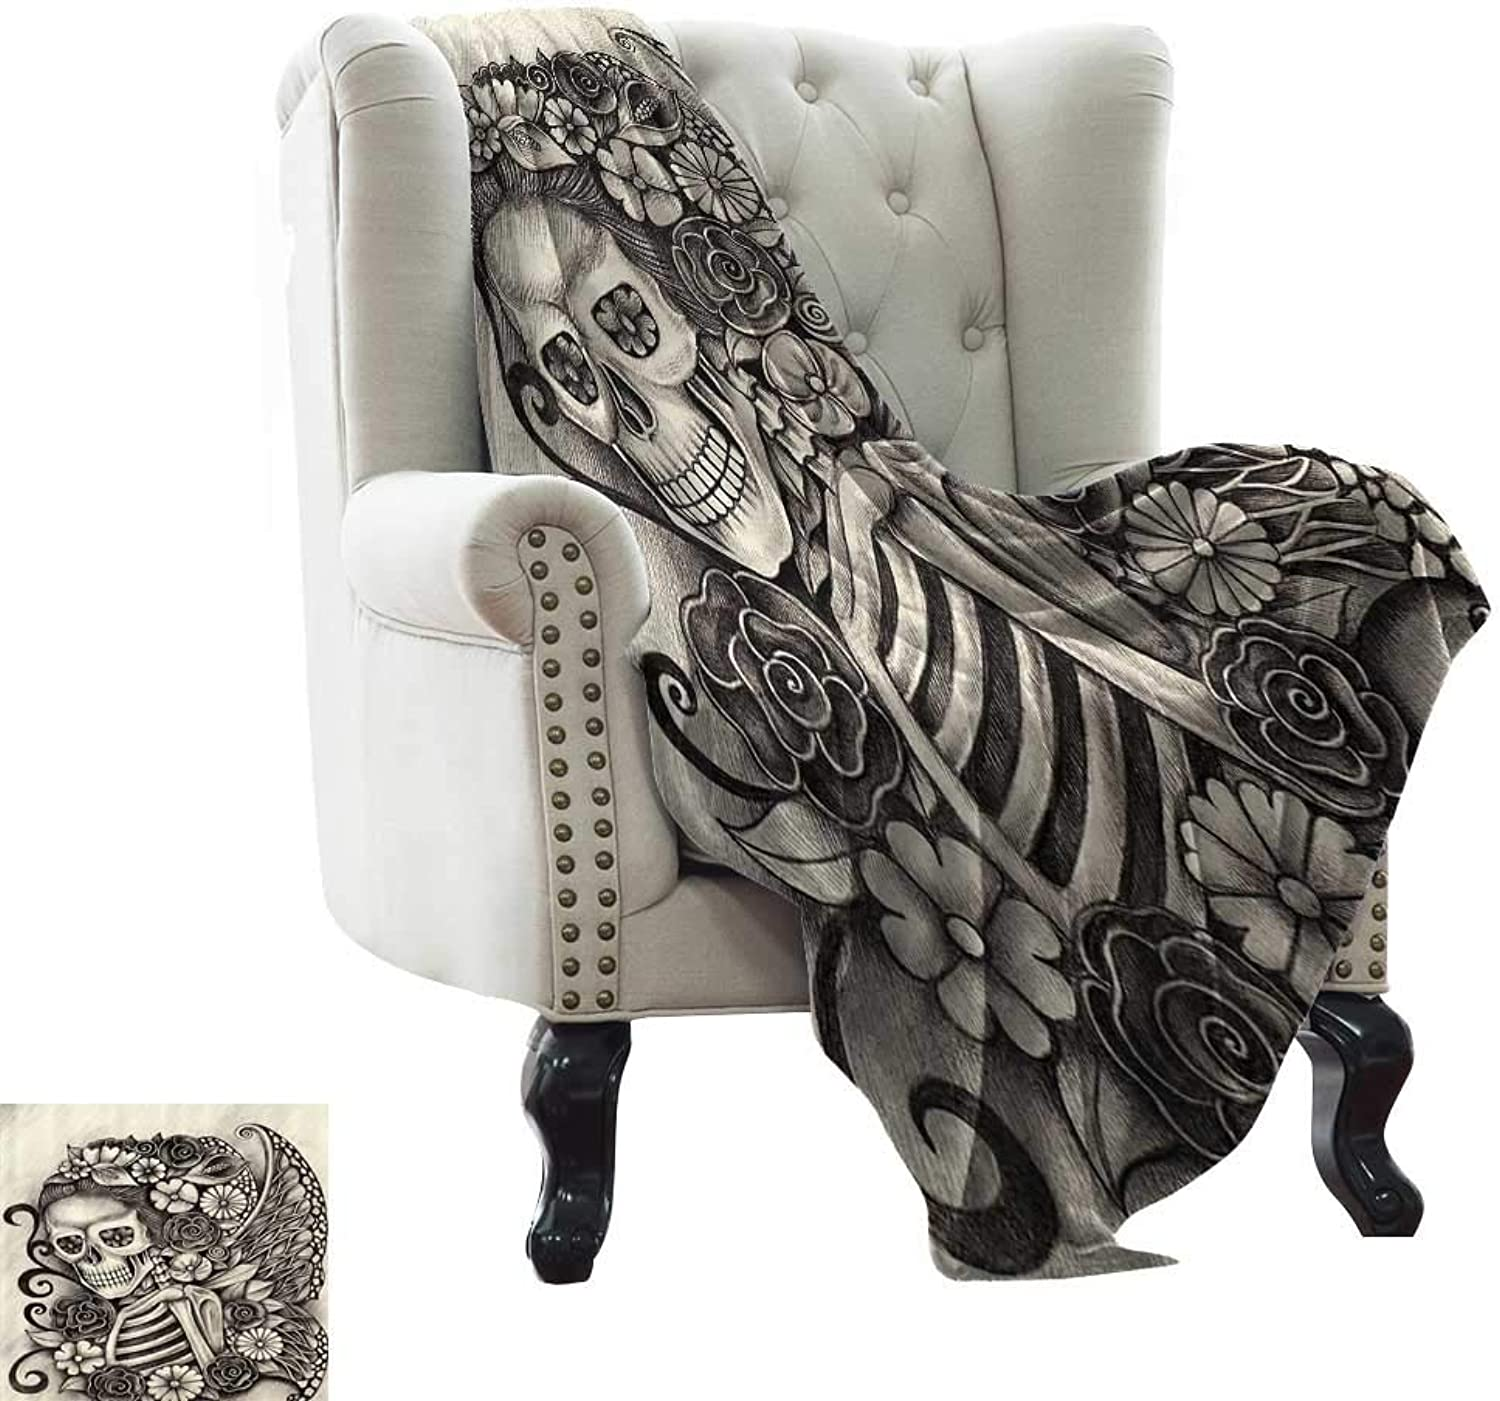 Day of The Dead Decor,Throw Blankets for Couch Spanish Mexican Festive Theme Skeleton Girl with Flowers Print 70 x50  Blanket Warm Winter Sofa Beige and Dimgrey